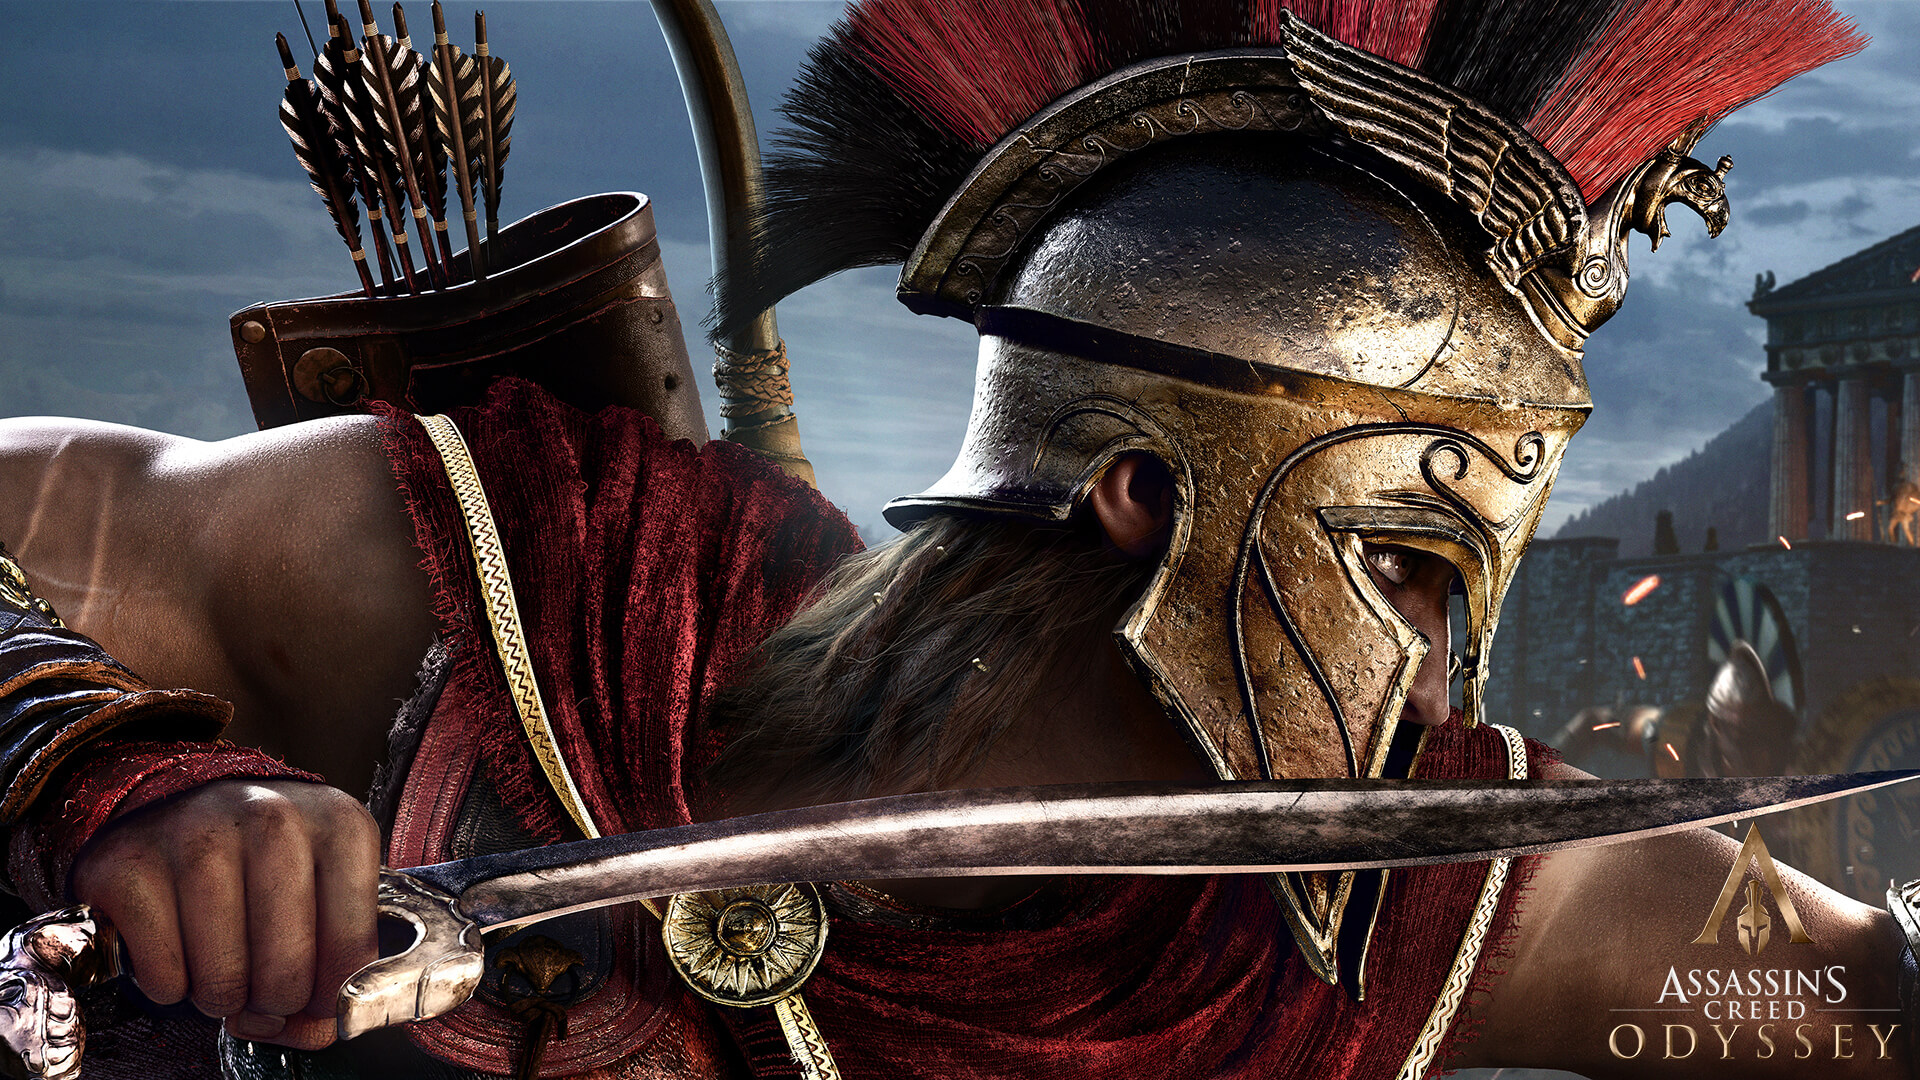 ACOdyssey PC Wallpaper Spartan 1920x1080 - [Gamescom 2018] Ubisoft lança novo trailer de Assassin's Creed Odyssey